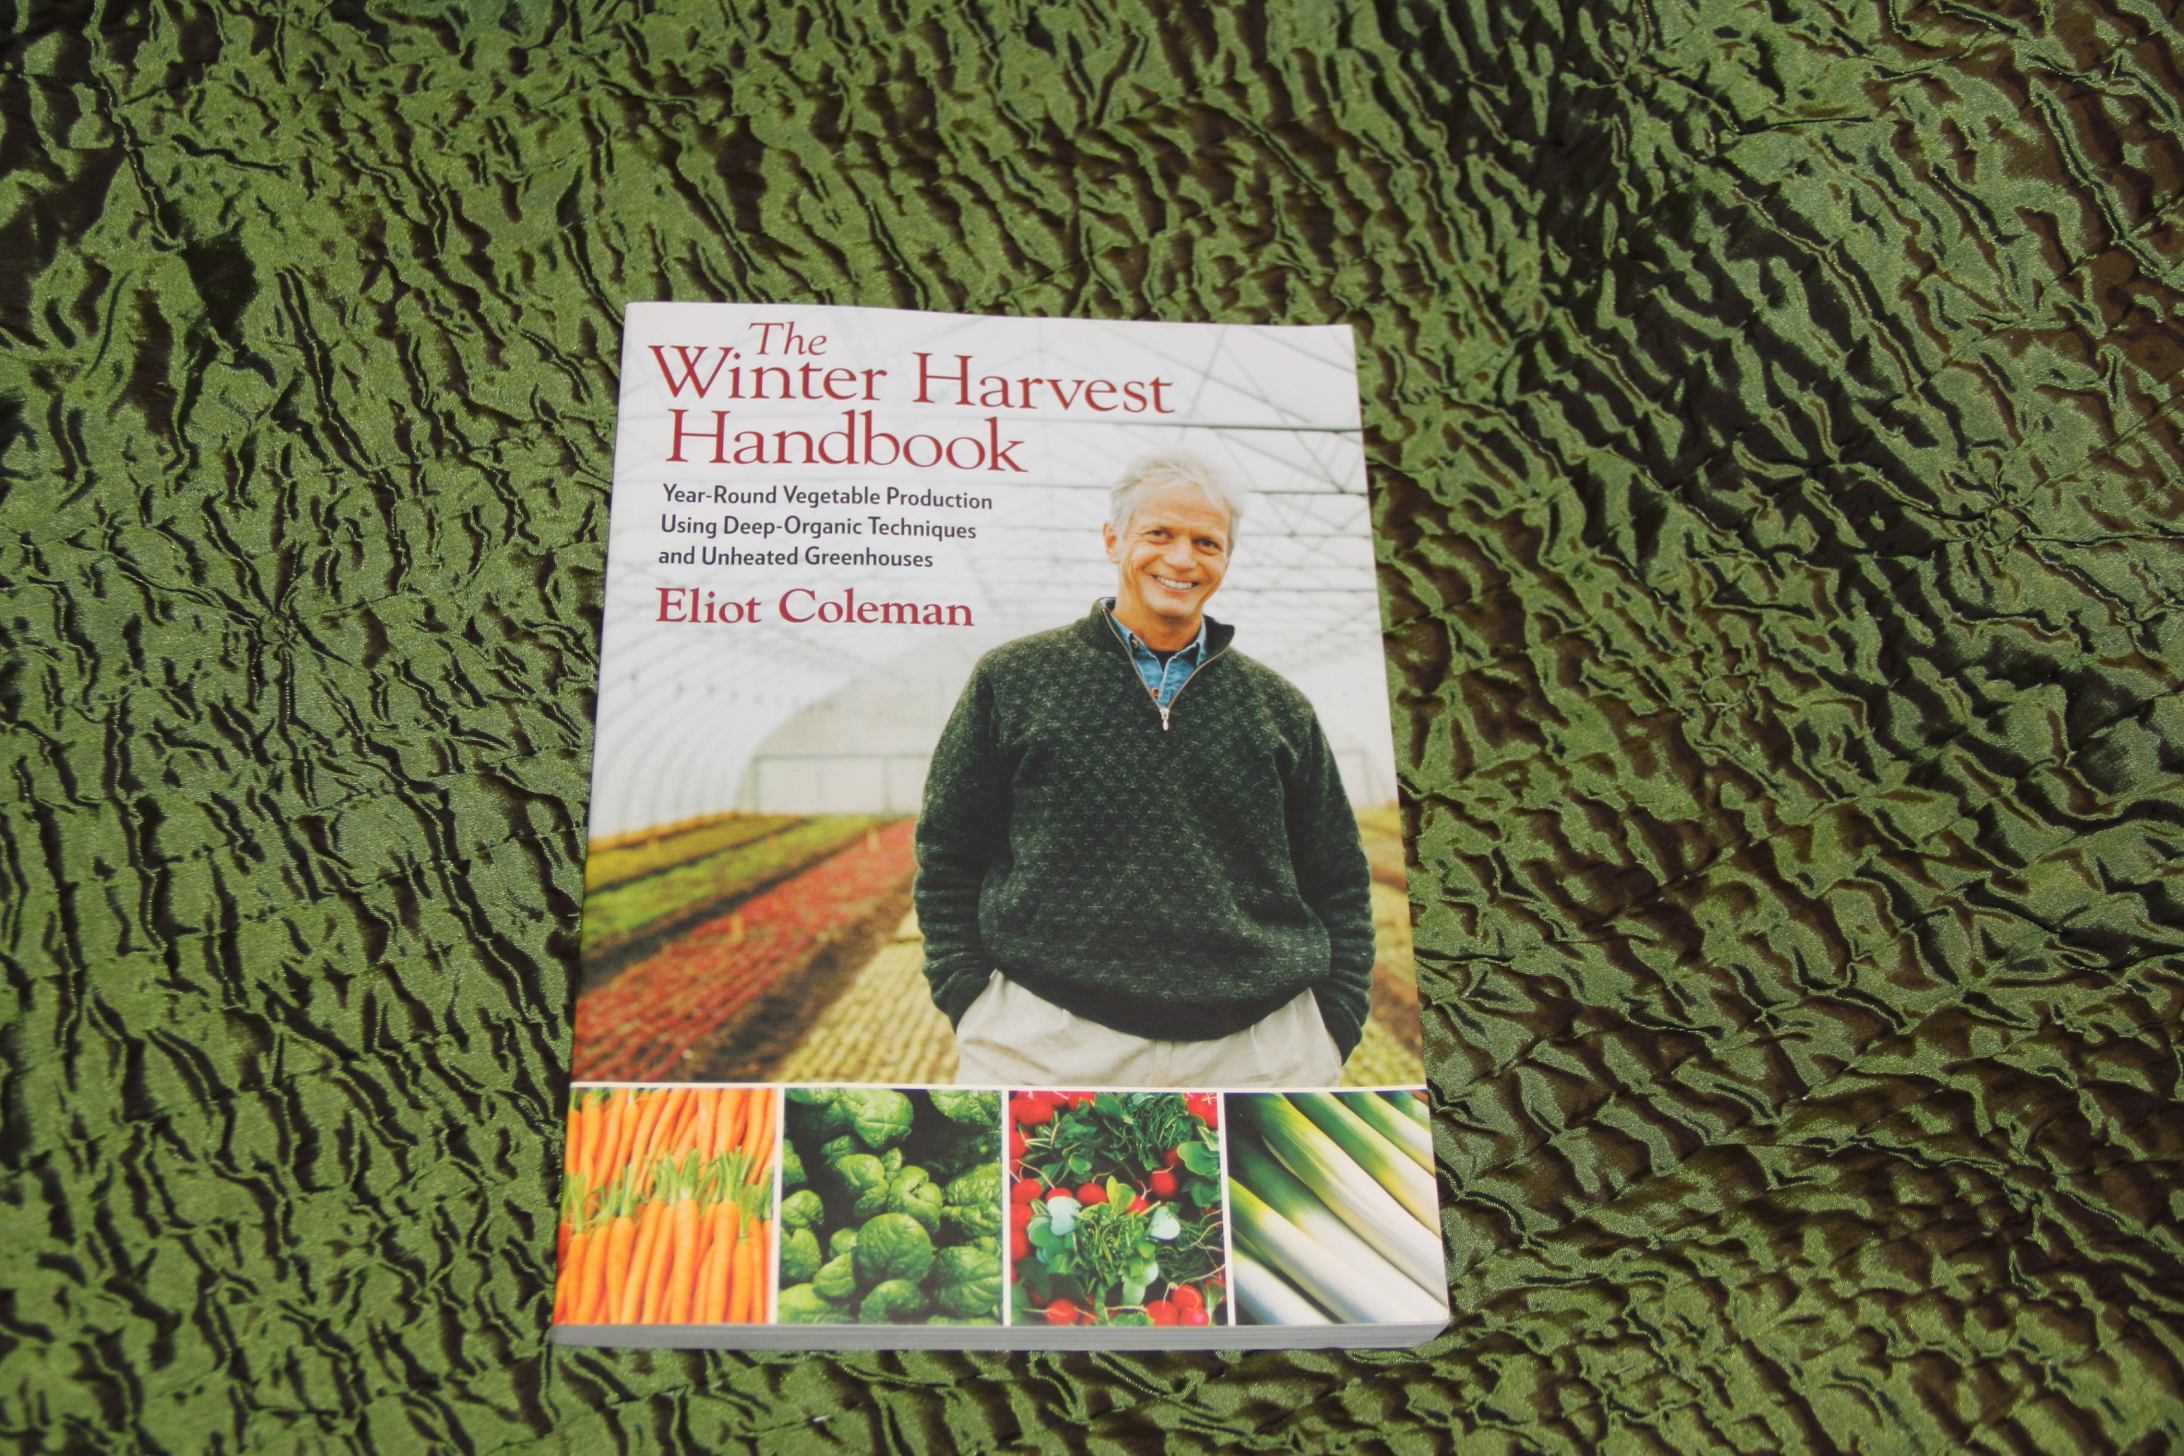 the winter harvest handbook yearround vegetable production using deeporganic techniques and unheated greenhouses